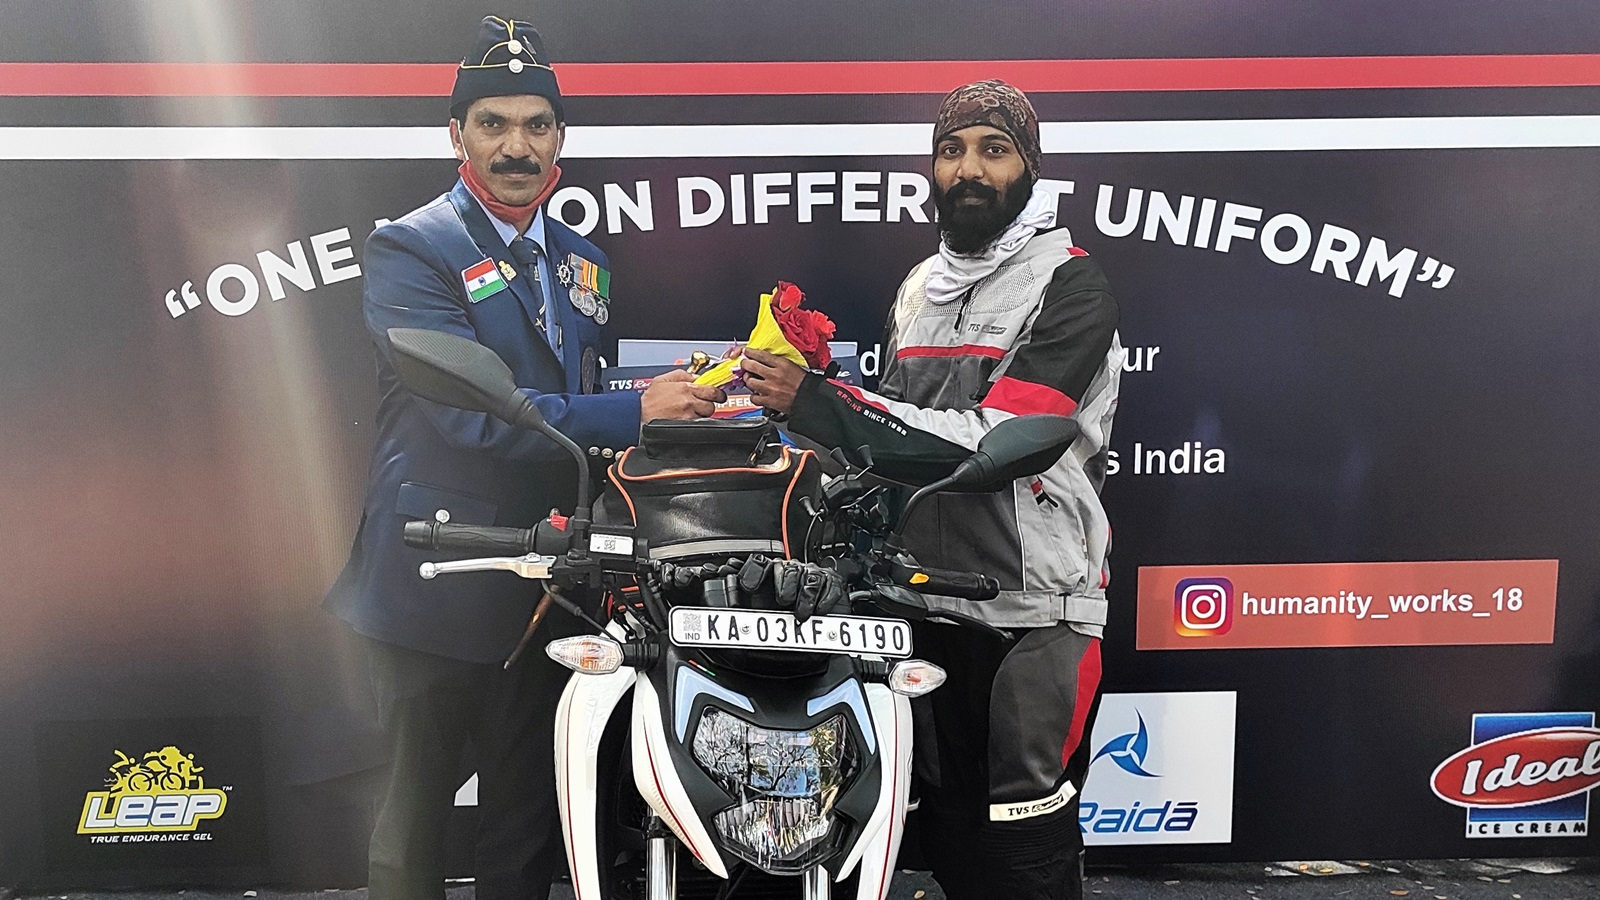 'One Nation Different Uniform' ride powered by TVS